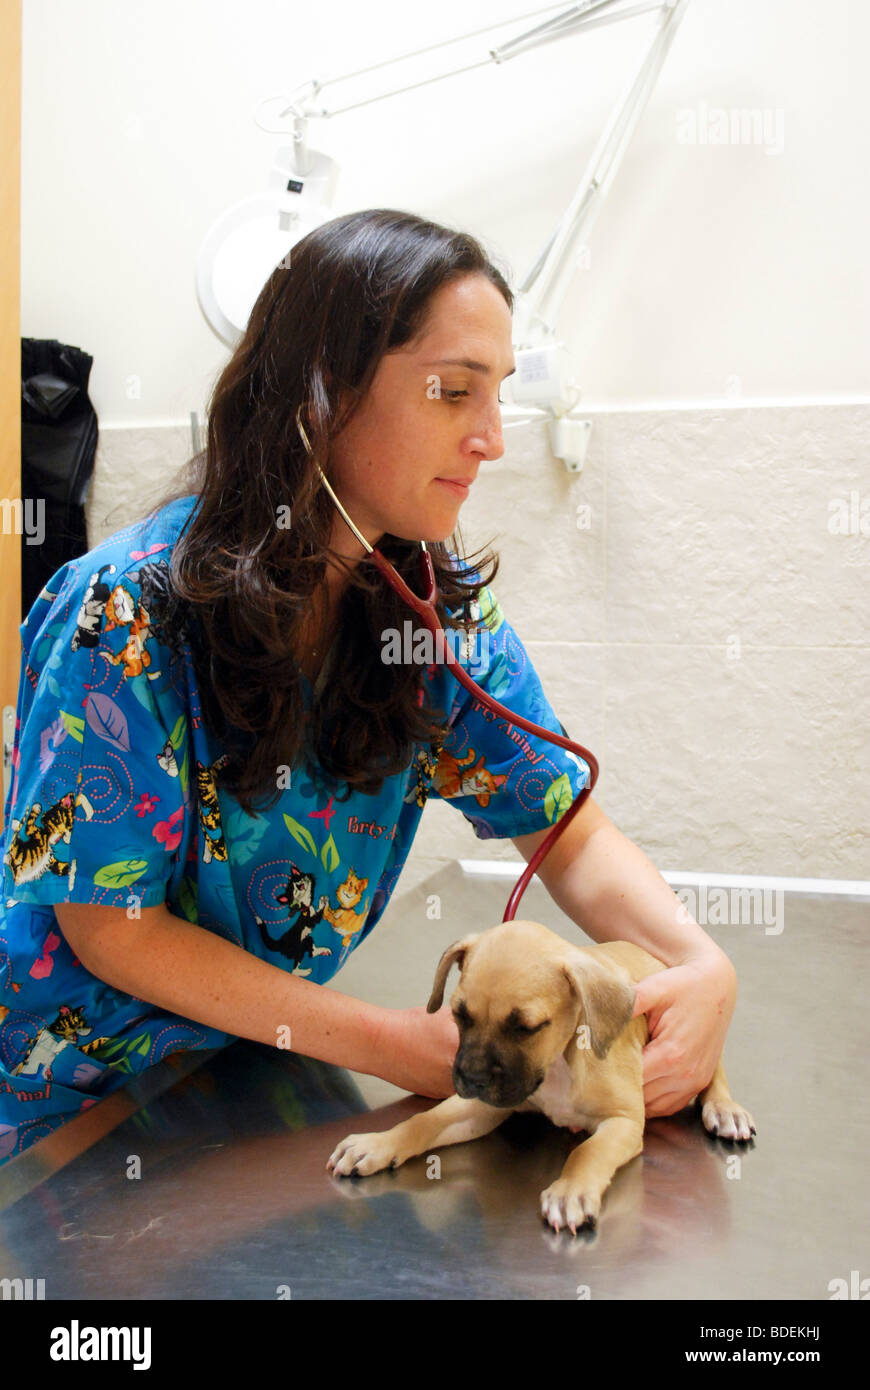 Female vet examines a puppy in her clinic - Stock Image